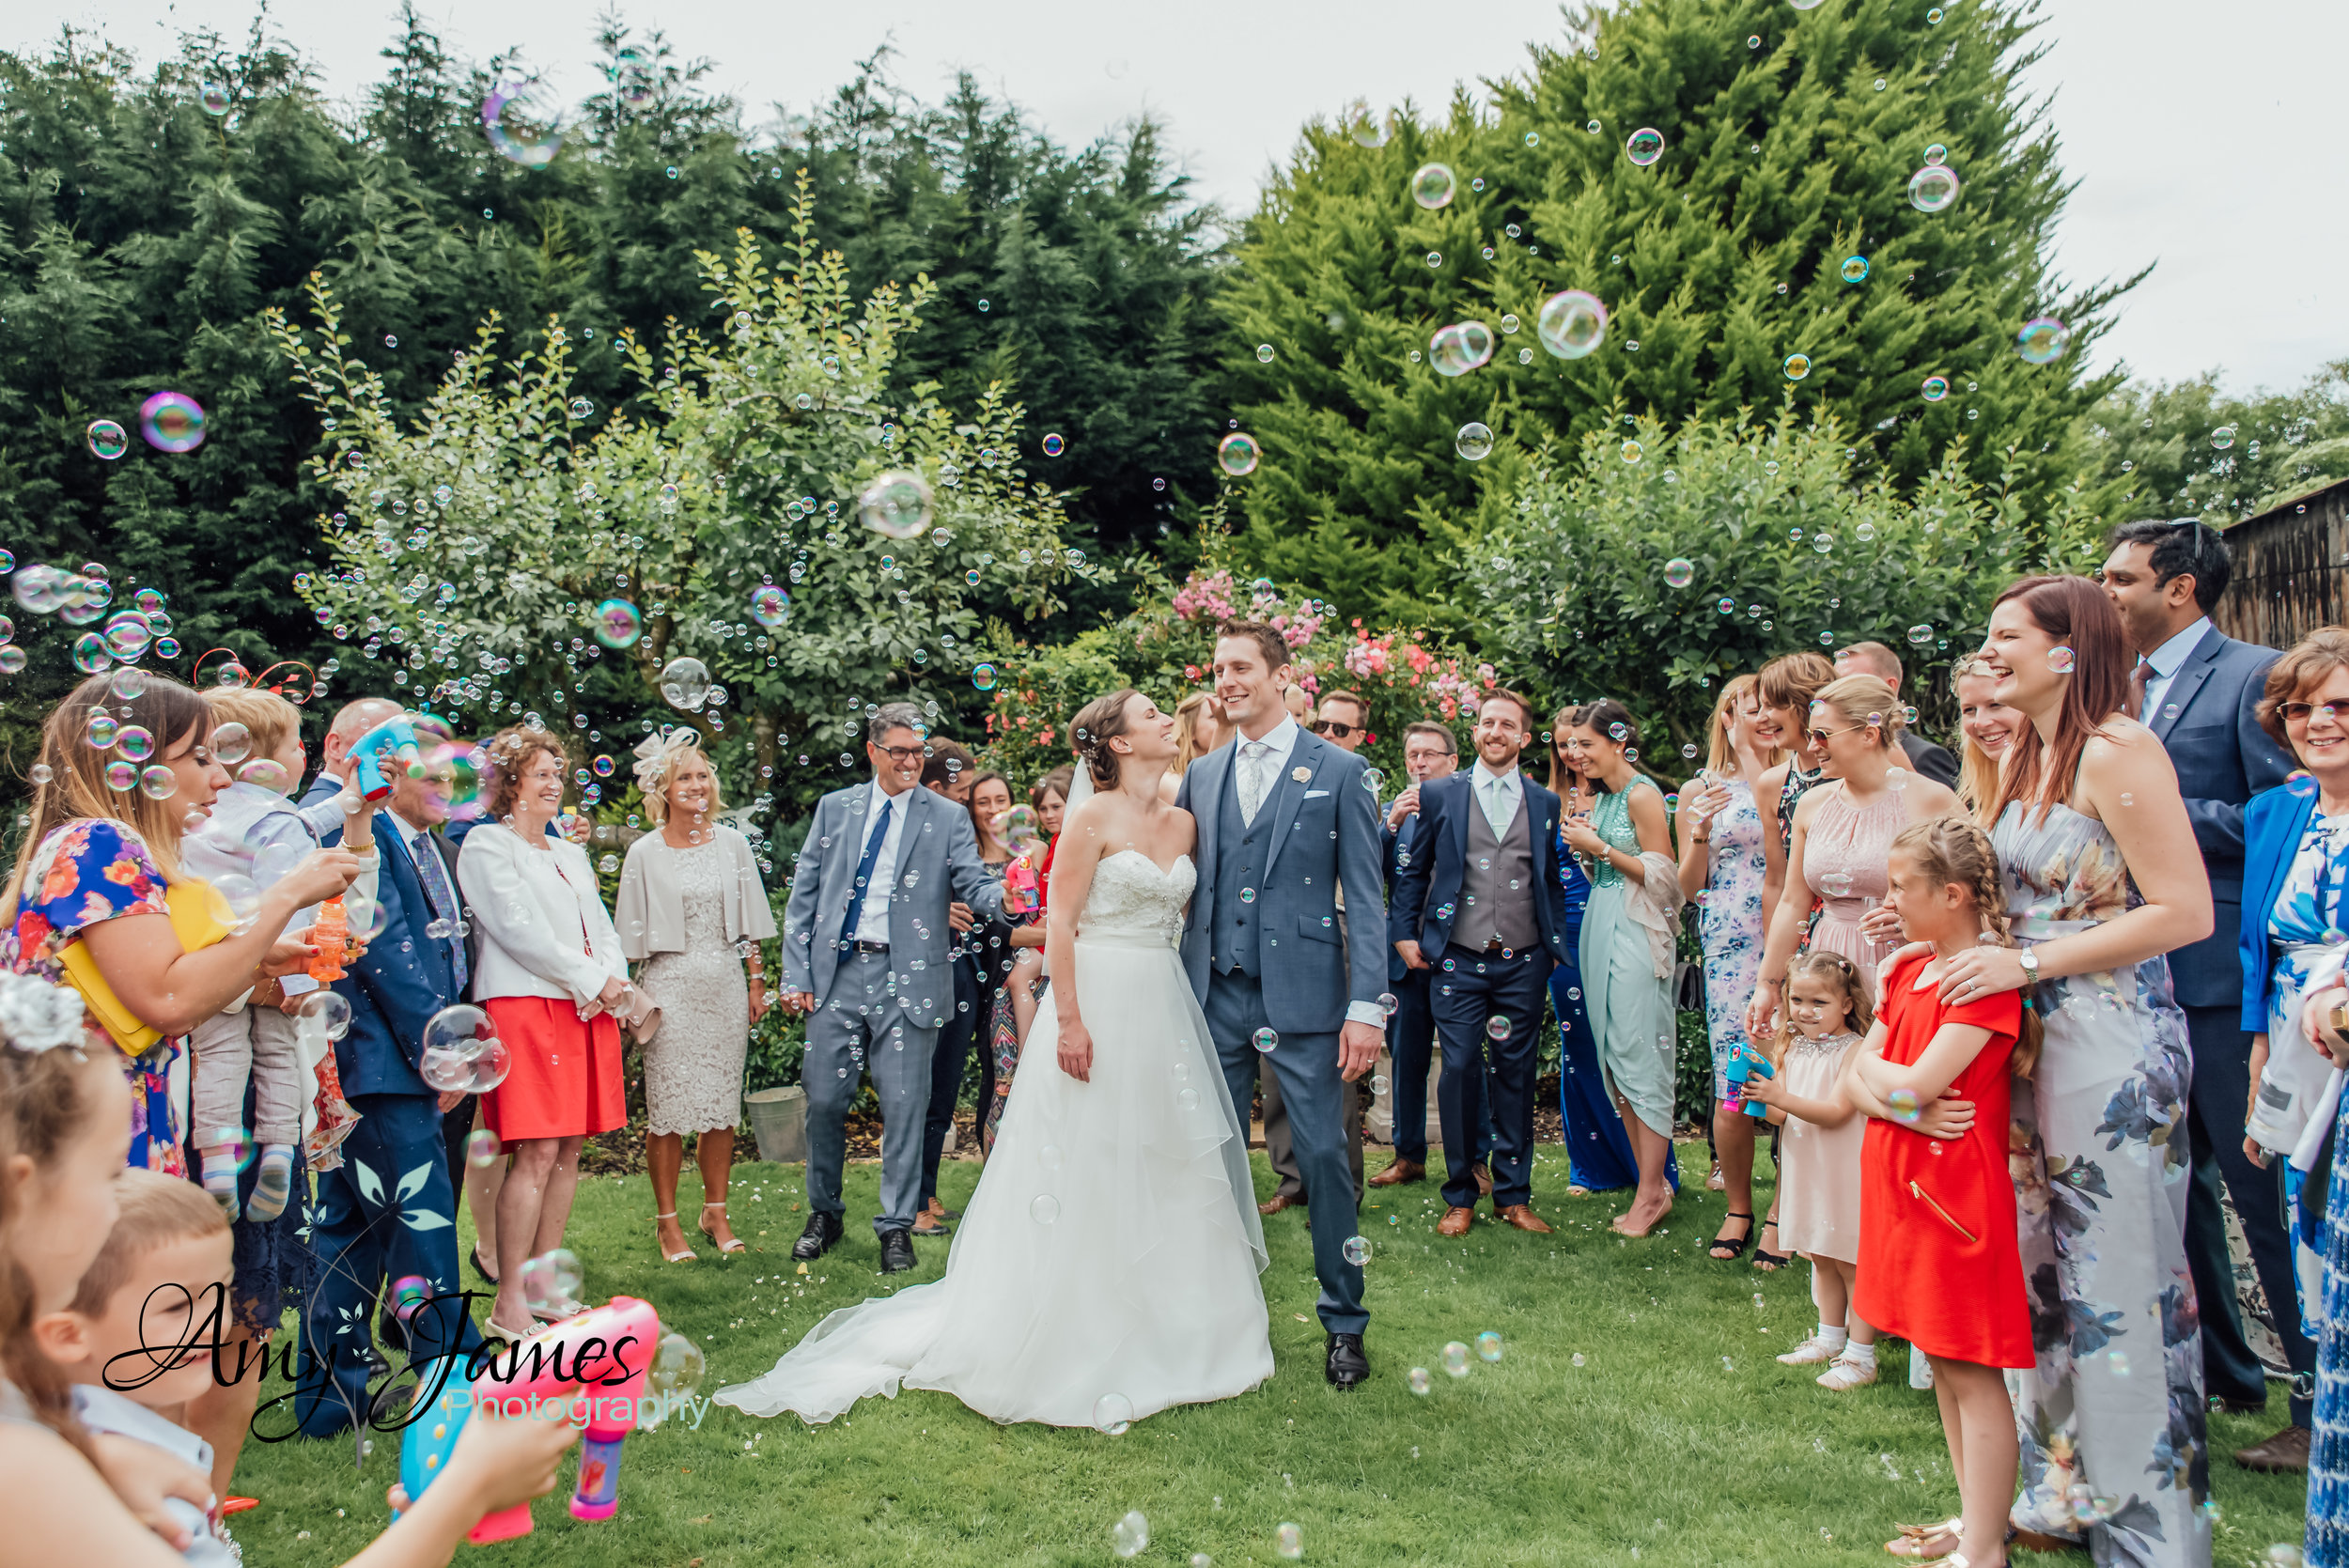 Taplins Place Wedding - Bride and Groom with bubbles instead of confetti - Amy James Photography - Hampshire Wedding Photographer